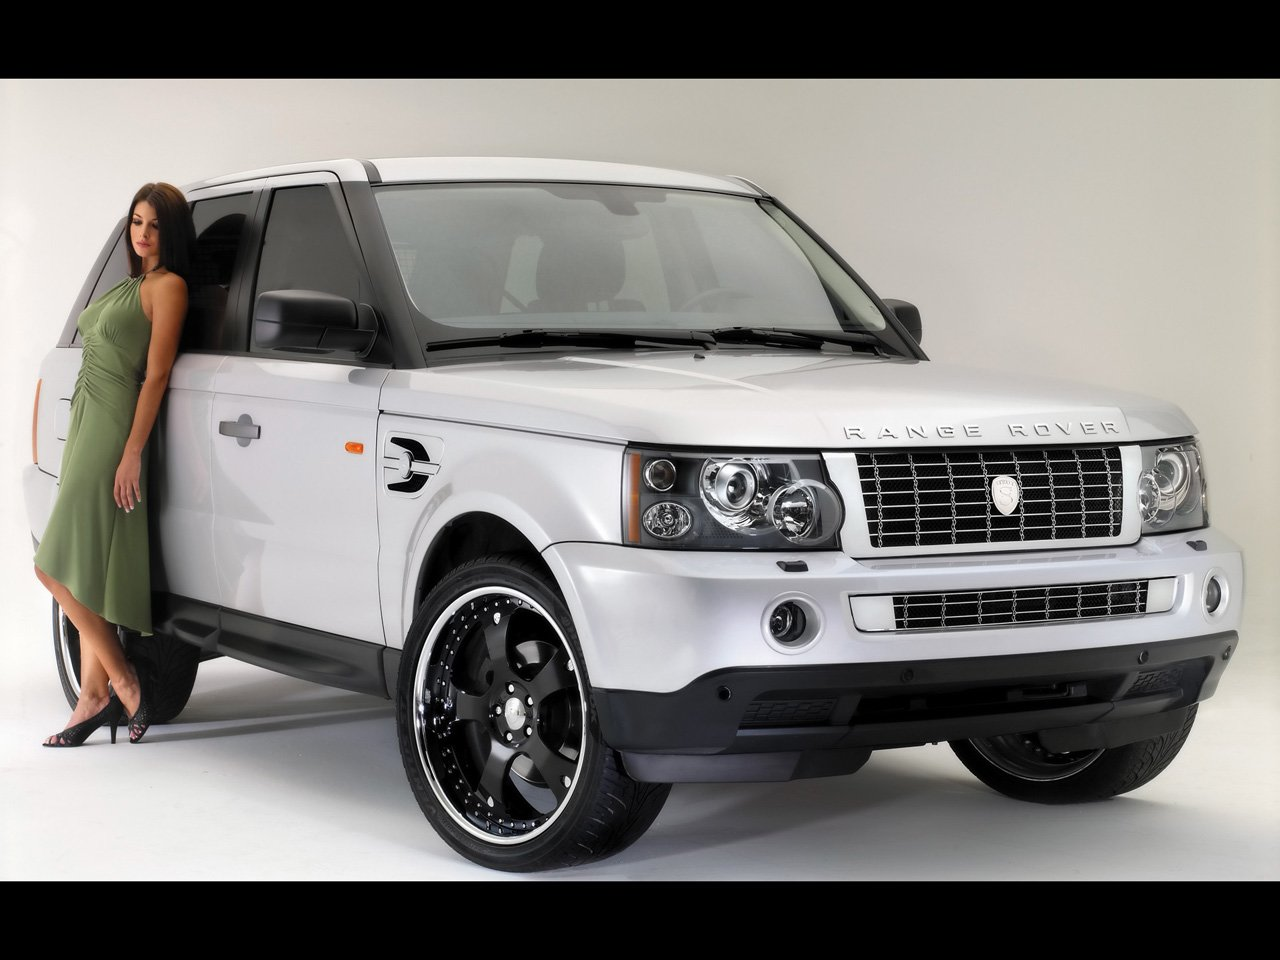 New Sport Cars Concept Cars Cars Gallery Land Rover Range On This Month